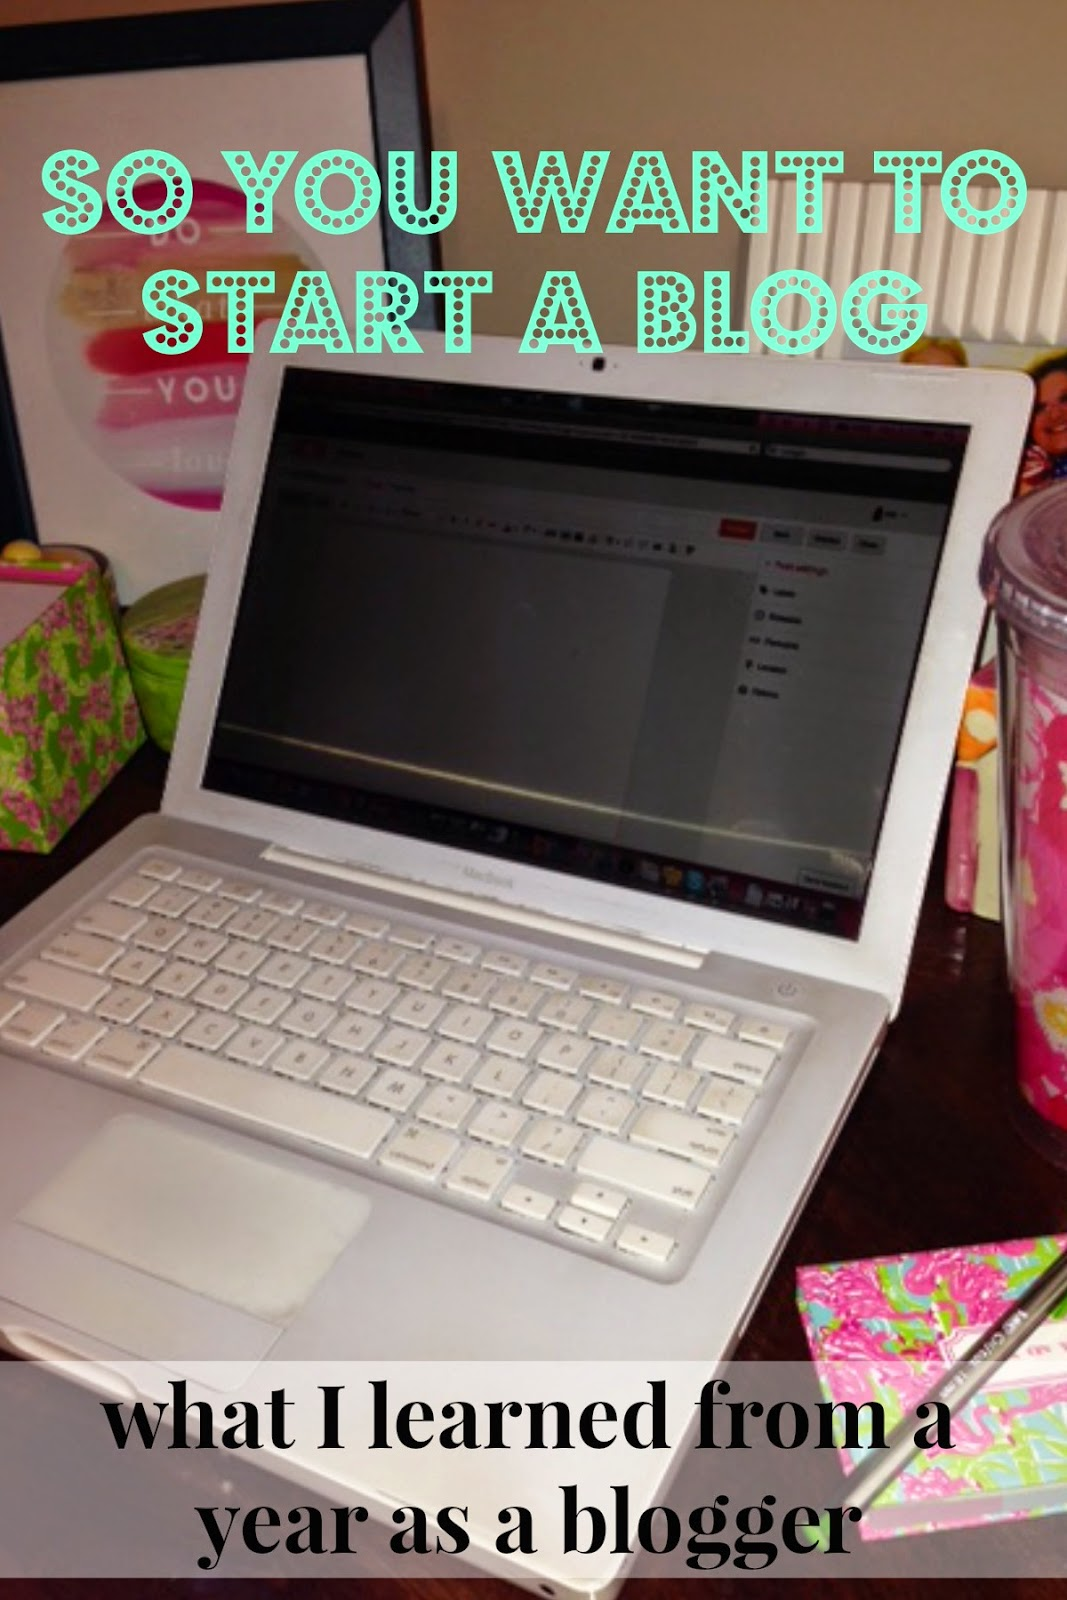 tips for bloggers, starting your own blog, southern bloggers, mississippi blogs, first time blogging tips, blogging reflections